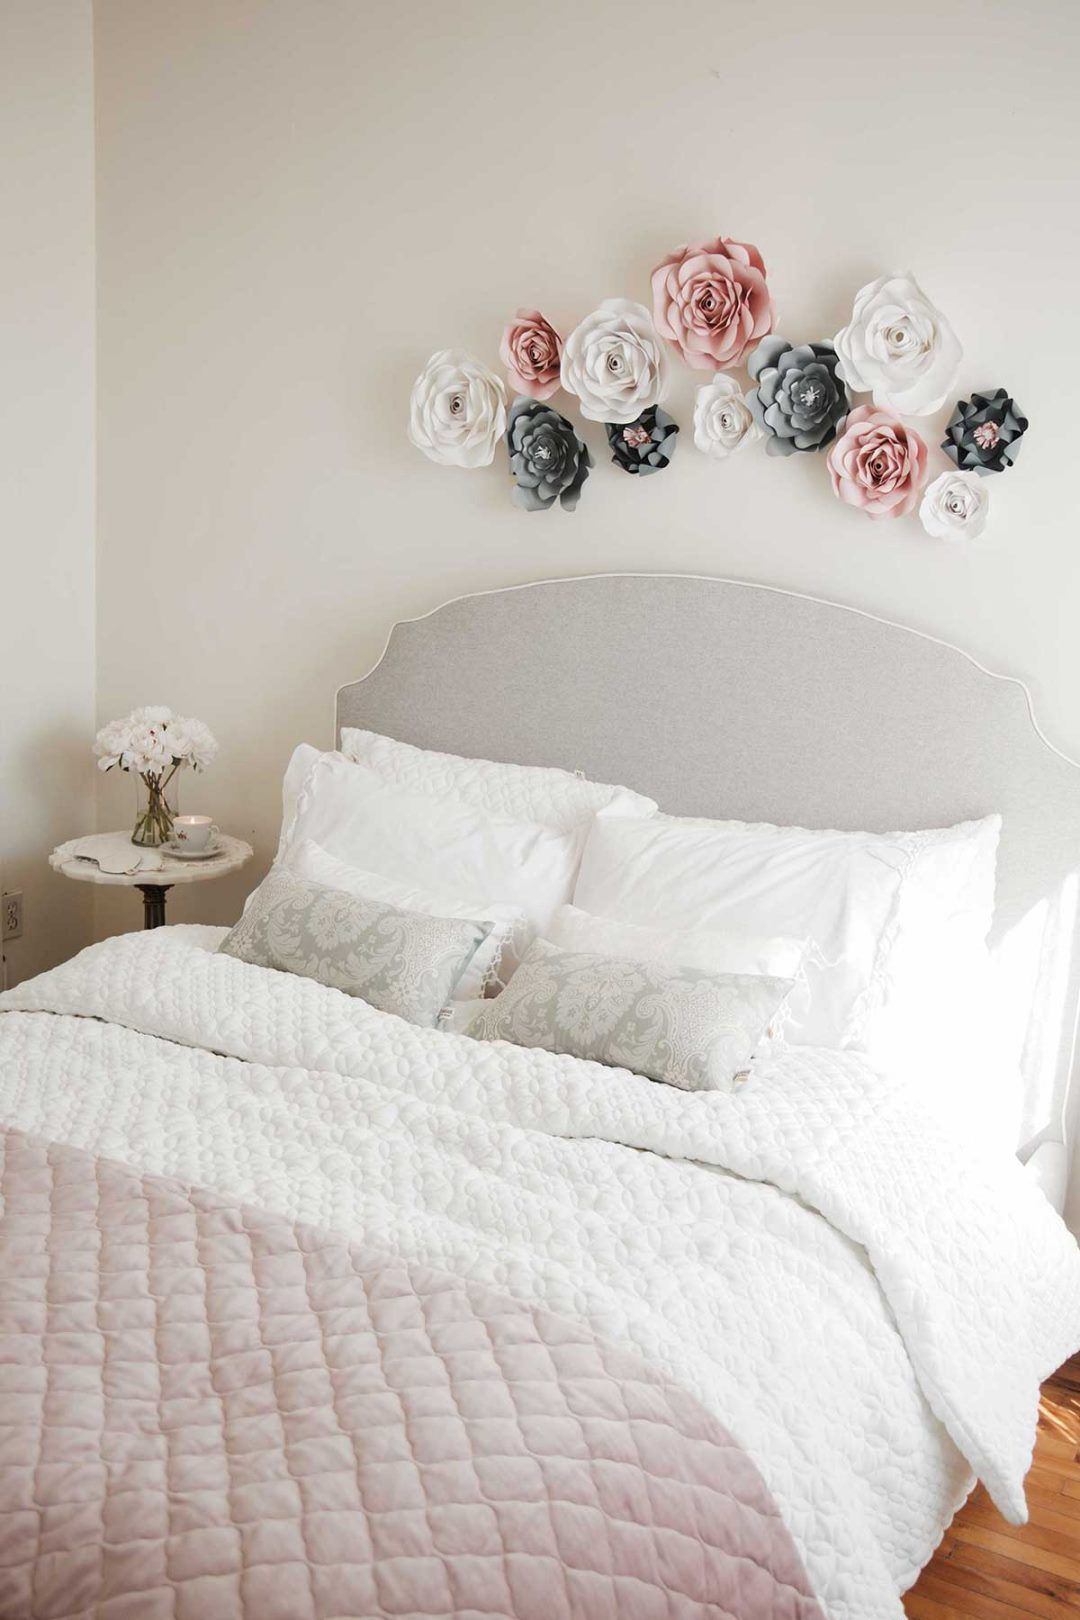 Chambre Style Shabby Chic country home decor | shabby chic decor, shabby chic, shabby